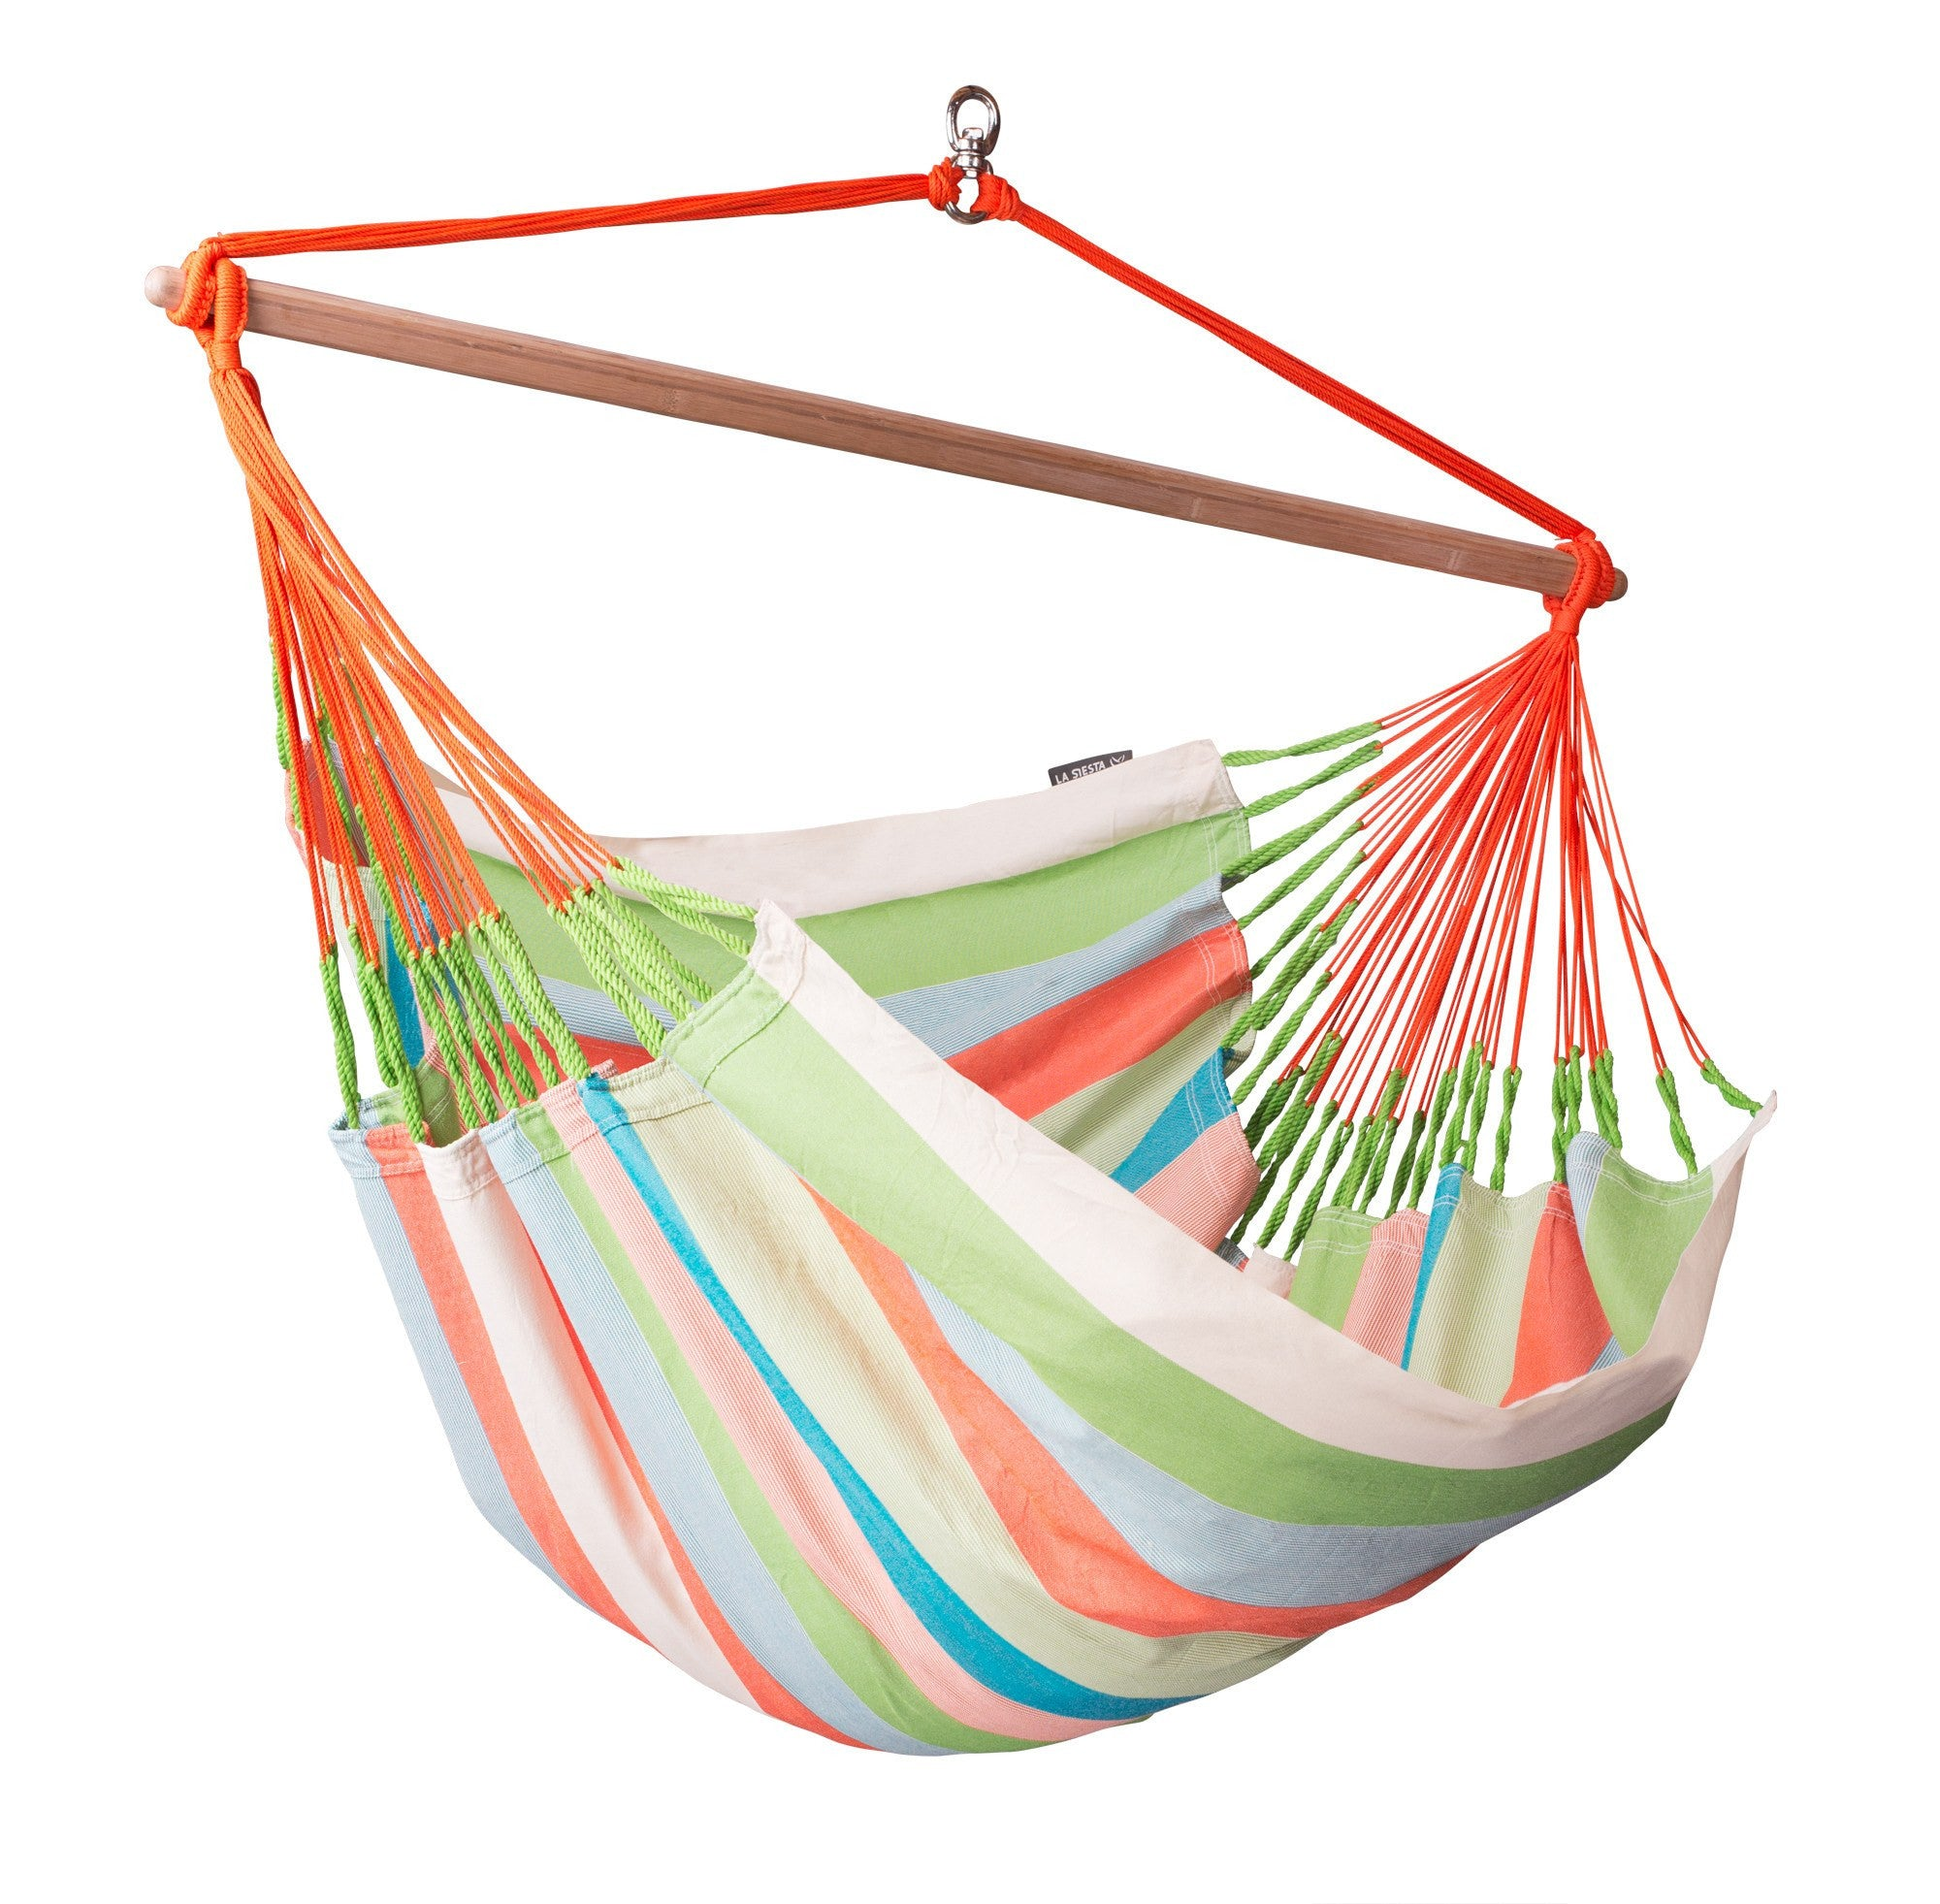 Hammock chair lounger DOMINGO